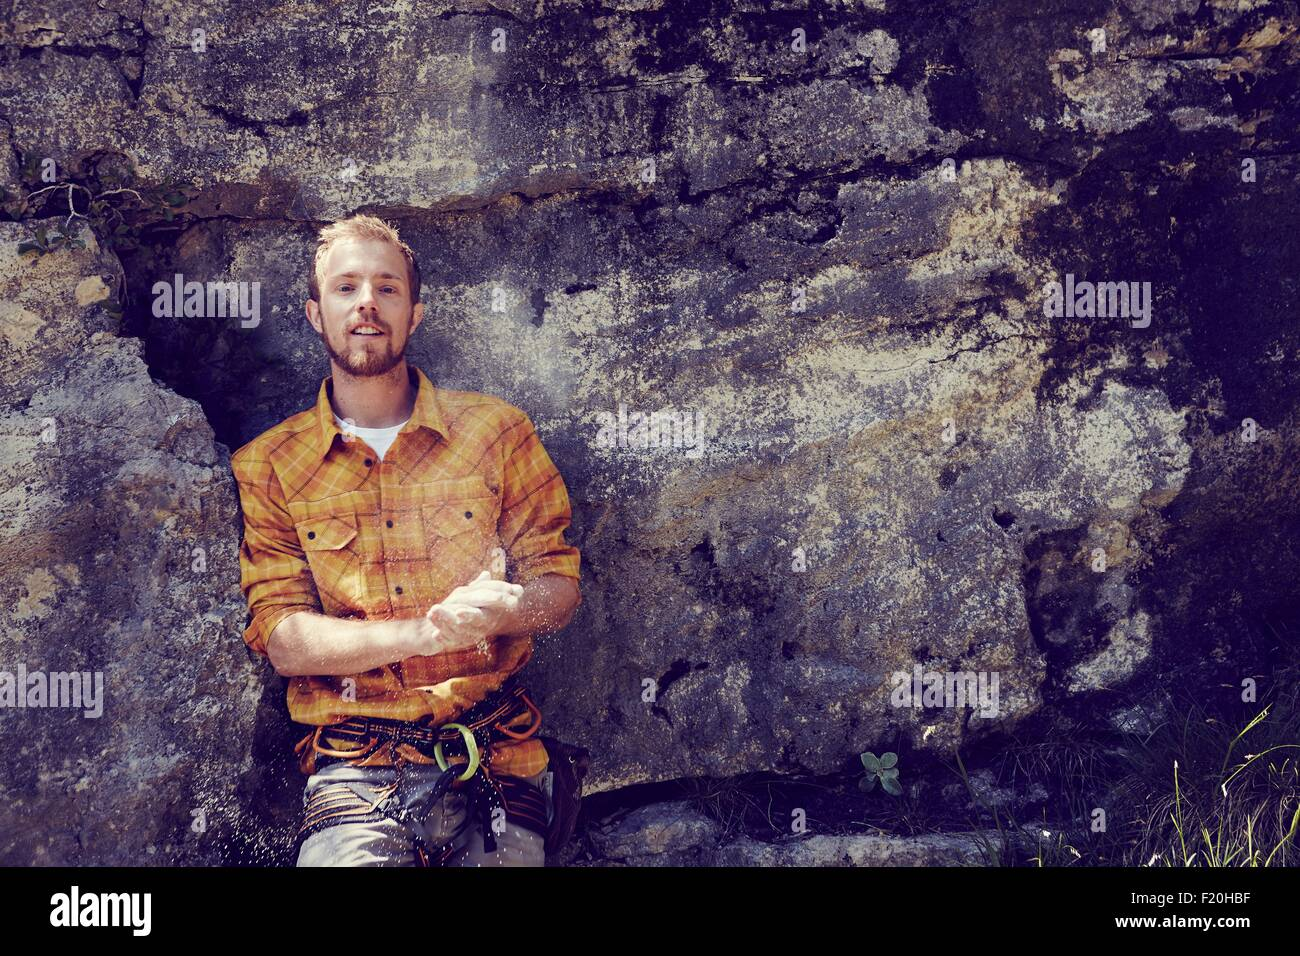 Climber leaning against rock wall, Ehrwald, Tyrol, Austria - Stock Image